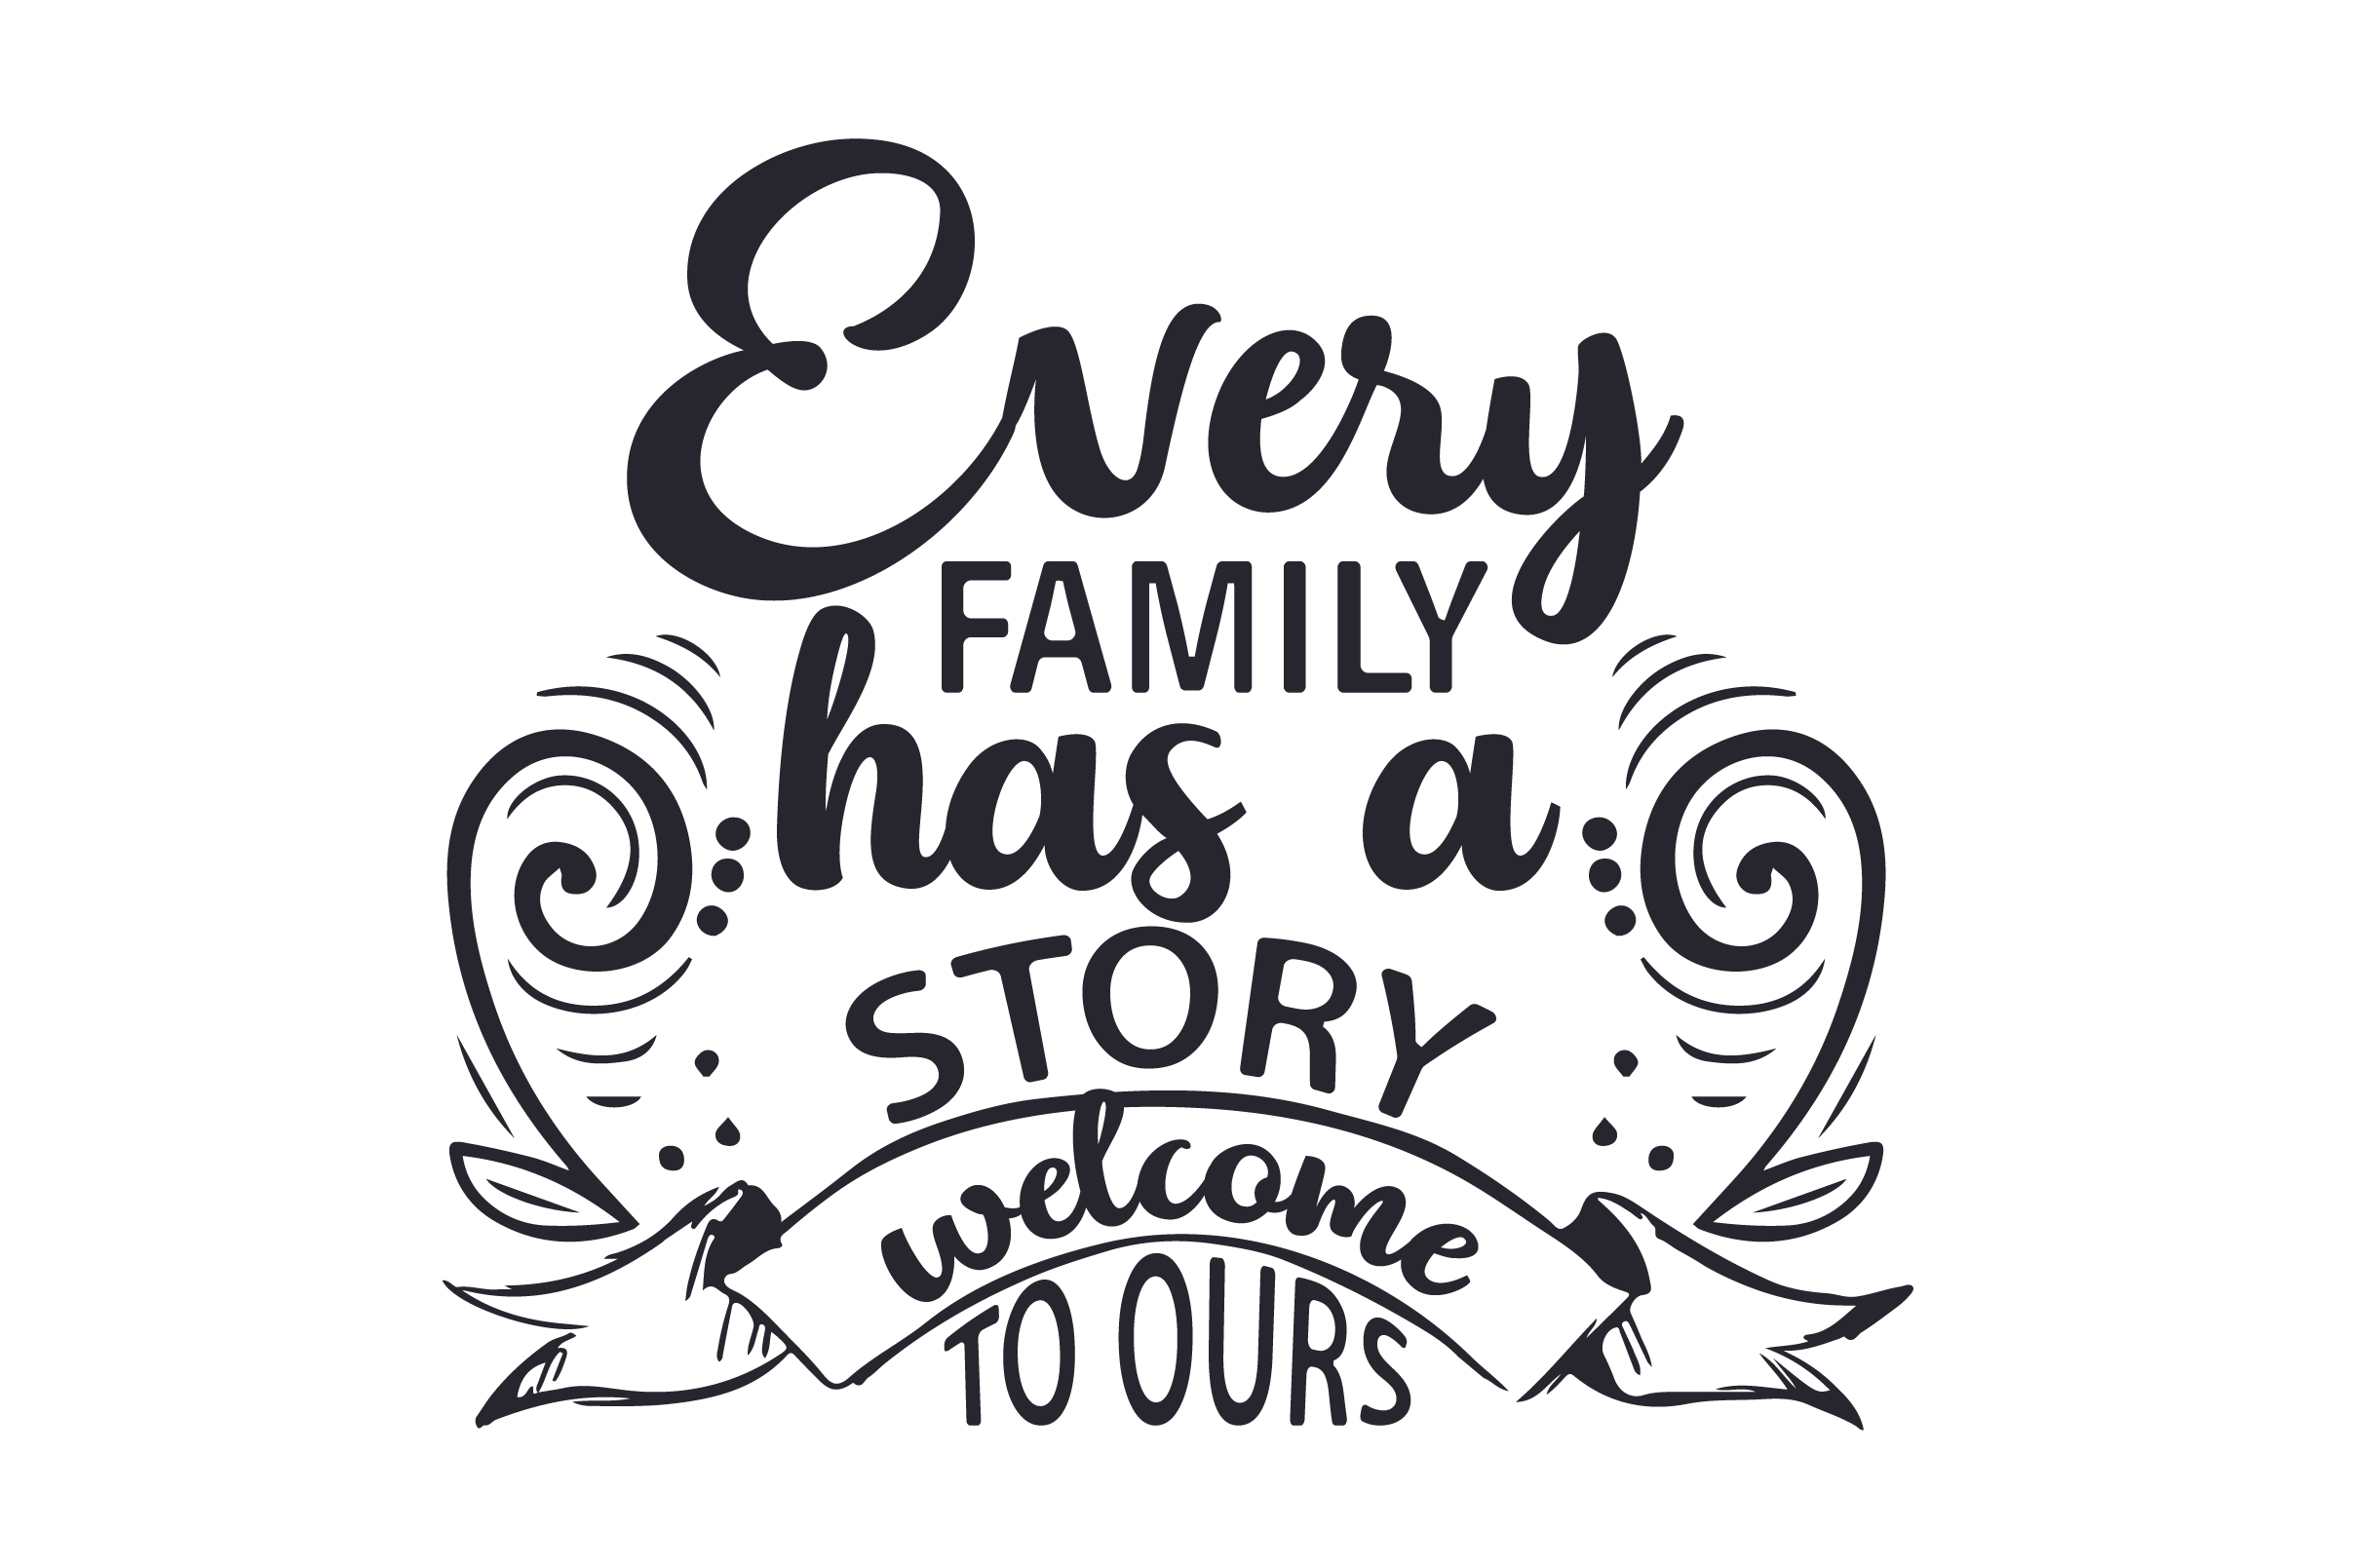 Download Free Every Family Has A Story Welcome To Ours Svg Plotterdatei Von for Cricut Explore, Silhouette and other cutting machines.